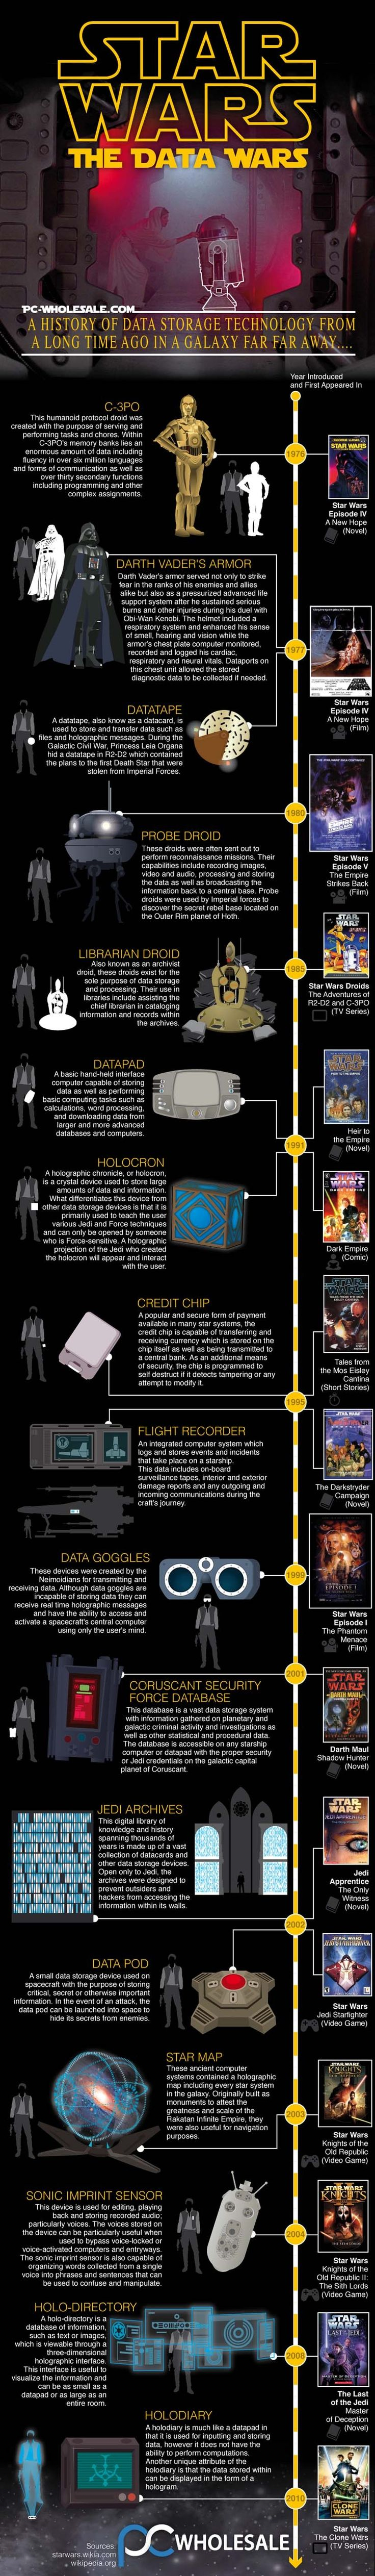 Infographic Star Wars The Data Wars